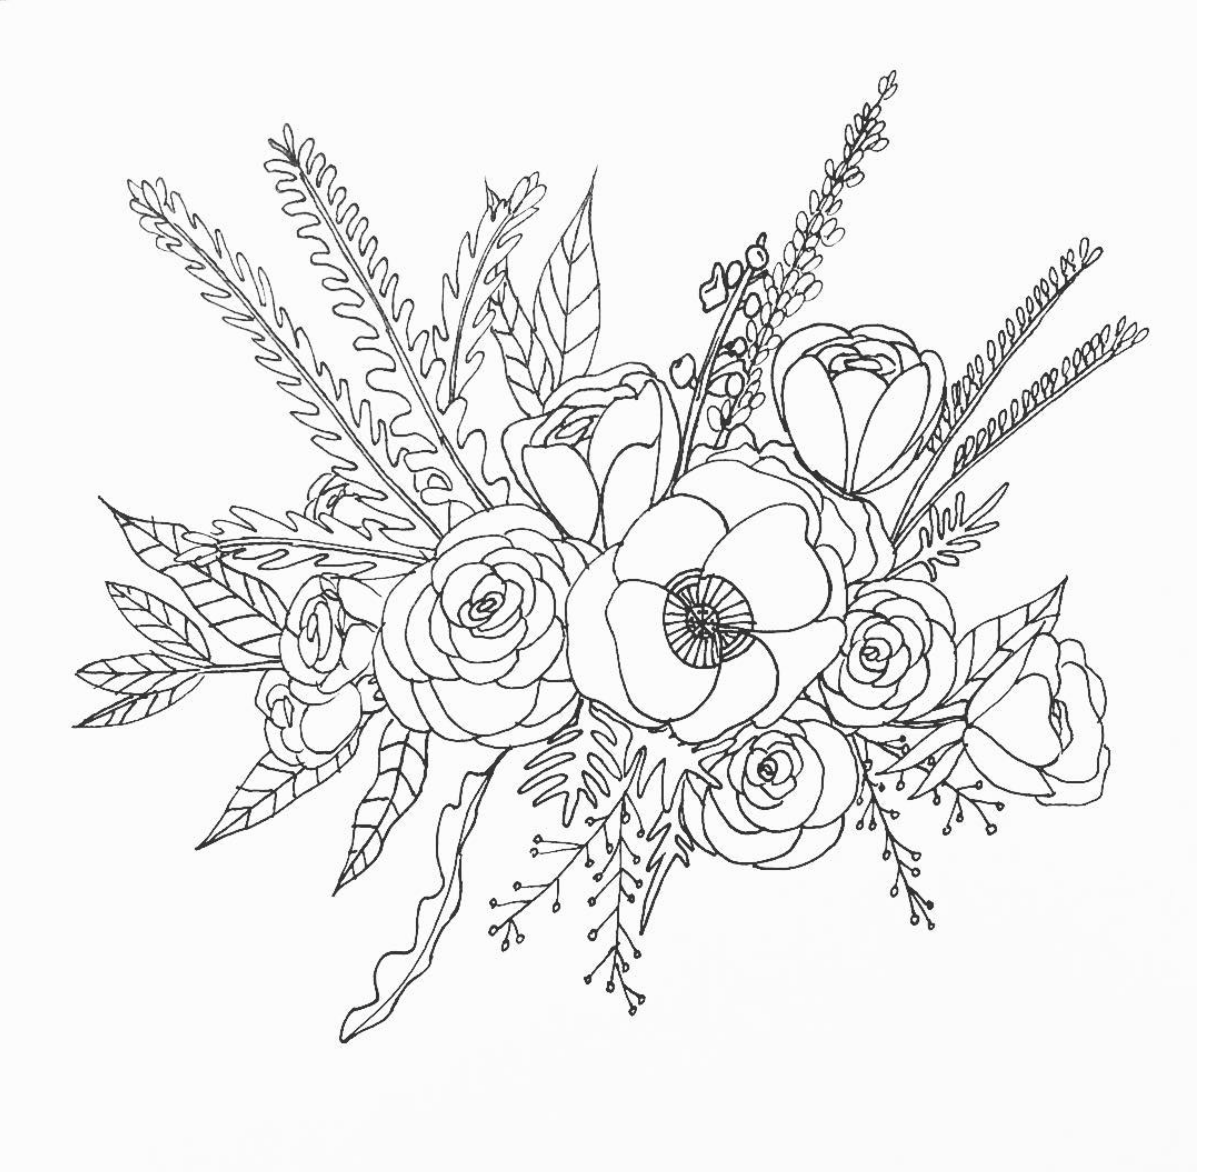 Flower Circle Line Drawing : Line drawing flower illustration floral bouquet art